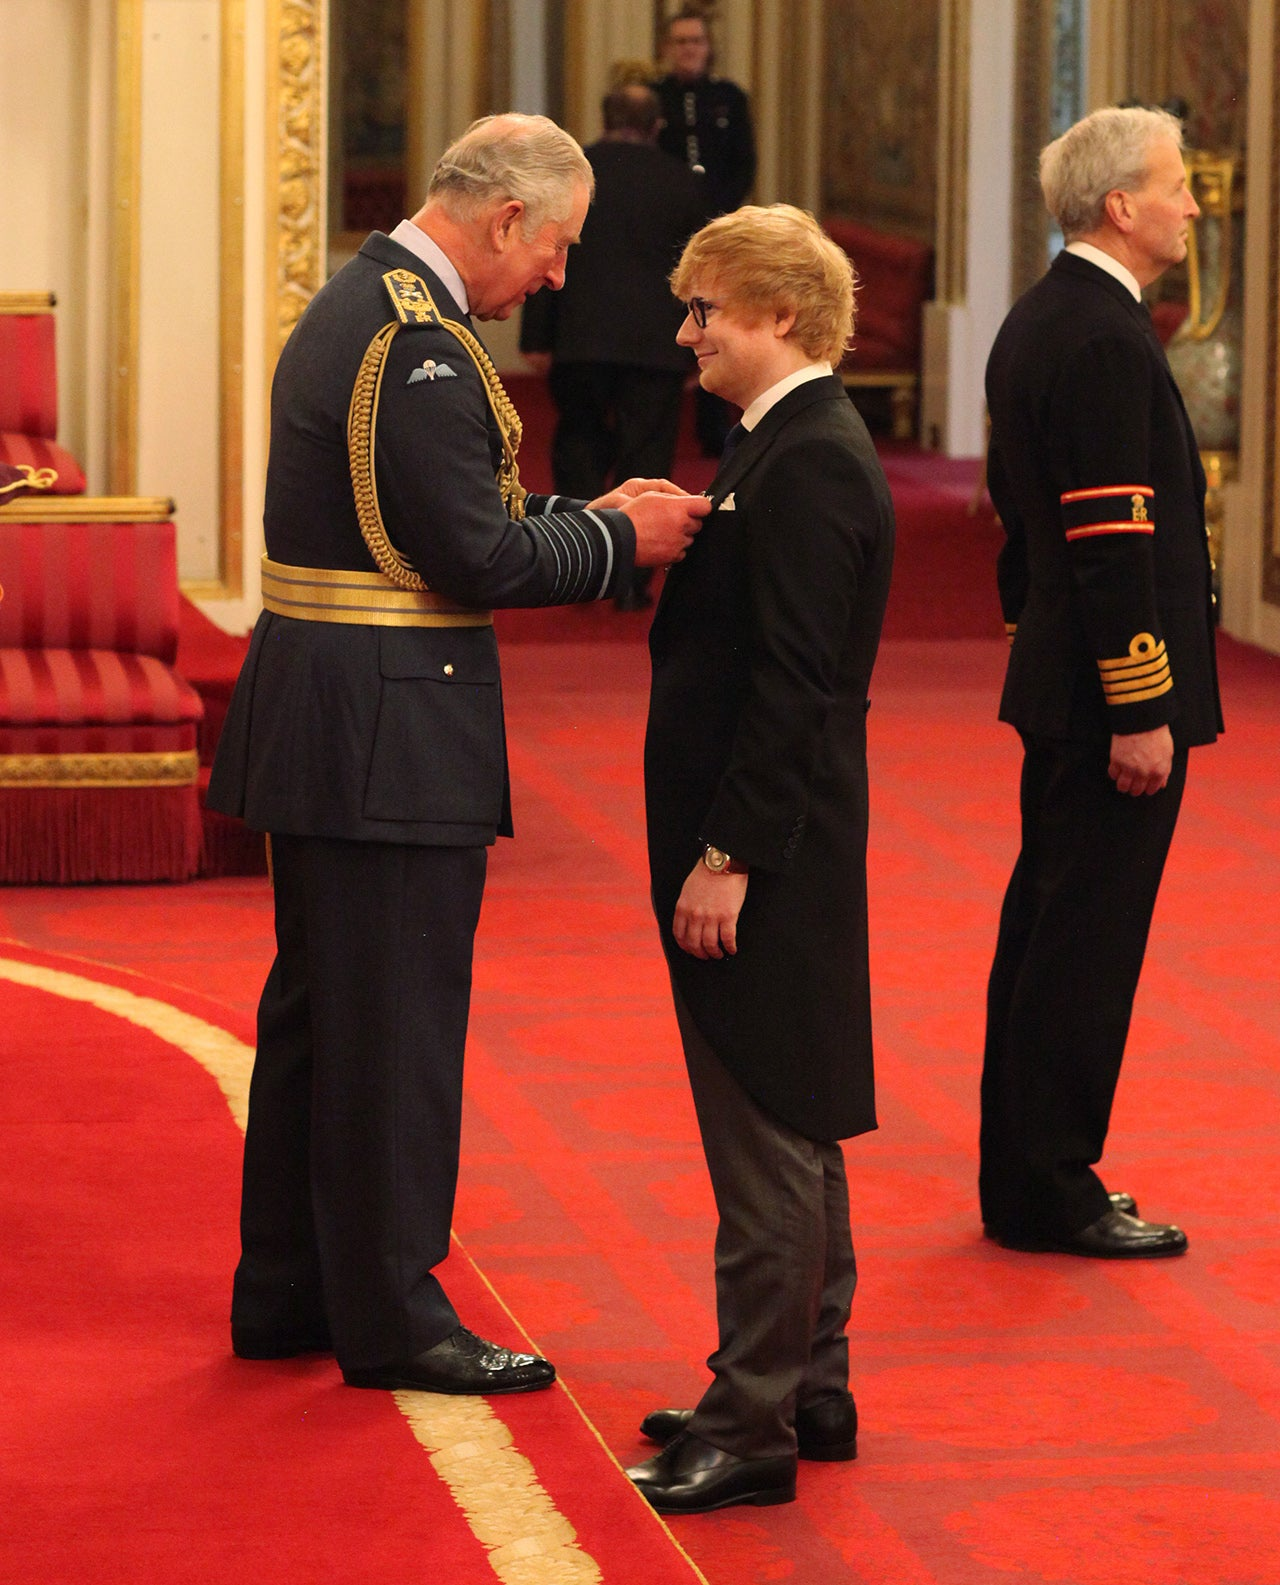 Suffolk-born superstar Ed Sheeran awarded MBE